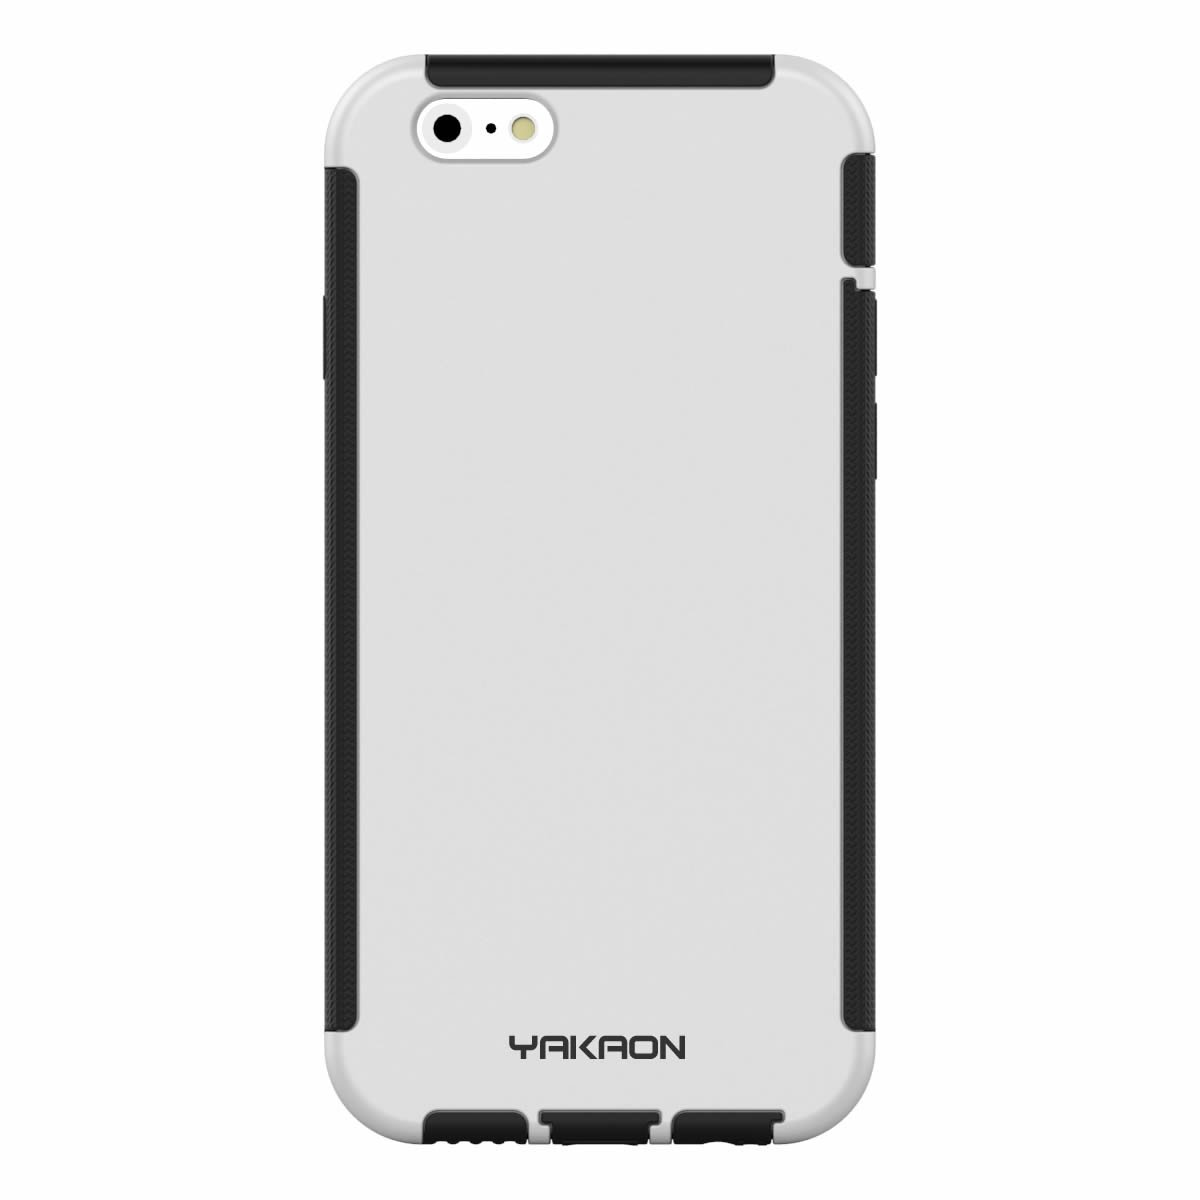 Durable Shatterproof, Dustproof, Shockproof Protective Case for iPhone 5S white